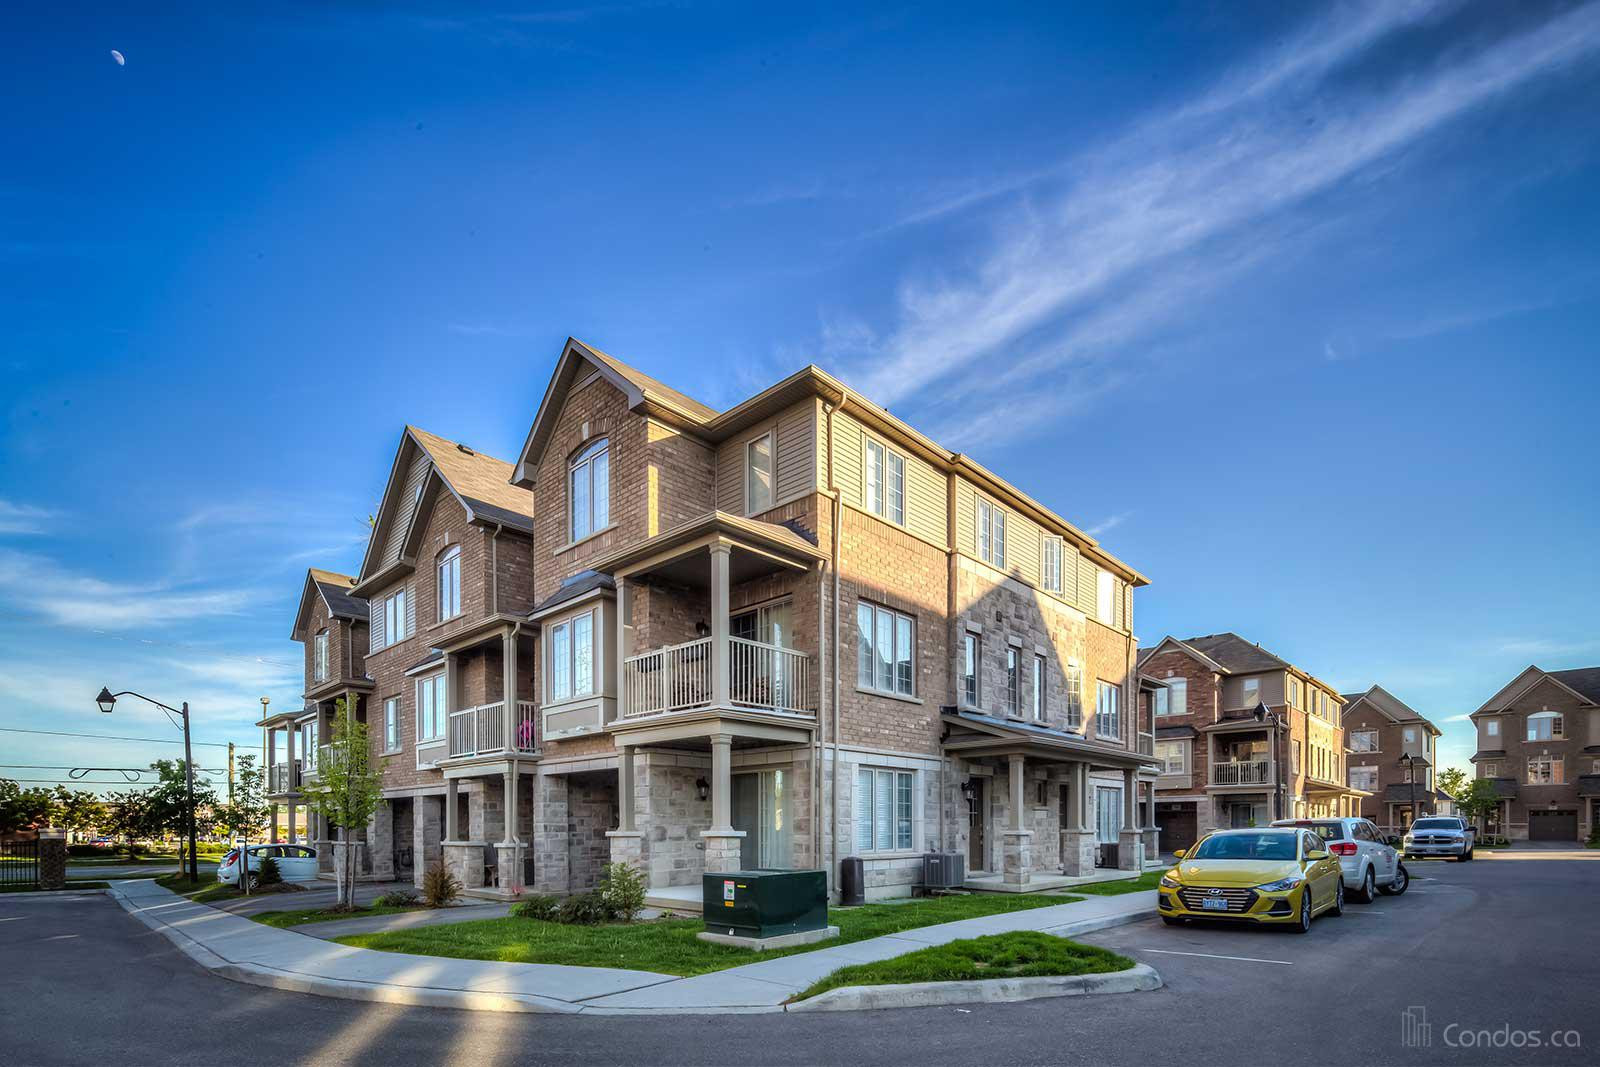 257 Parkside Condos at 257 Parkside Dr, Waterdown 0